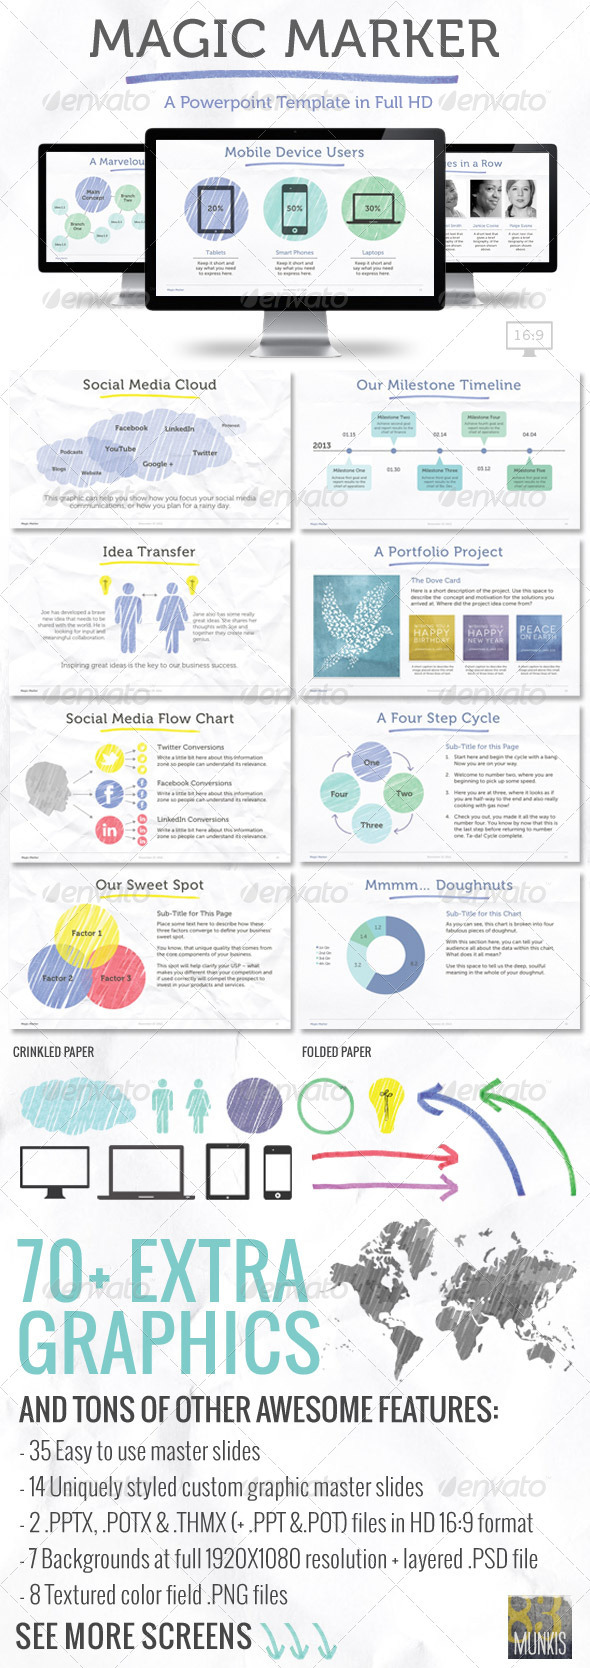 Magic Marker Powerpoint Template - Powerpoint Templates Presentation Templates